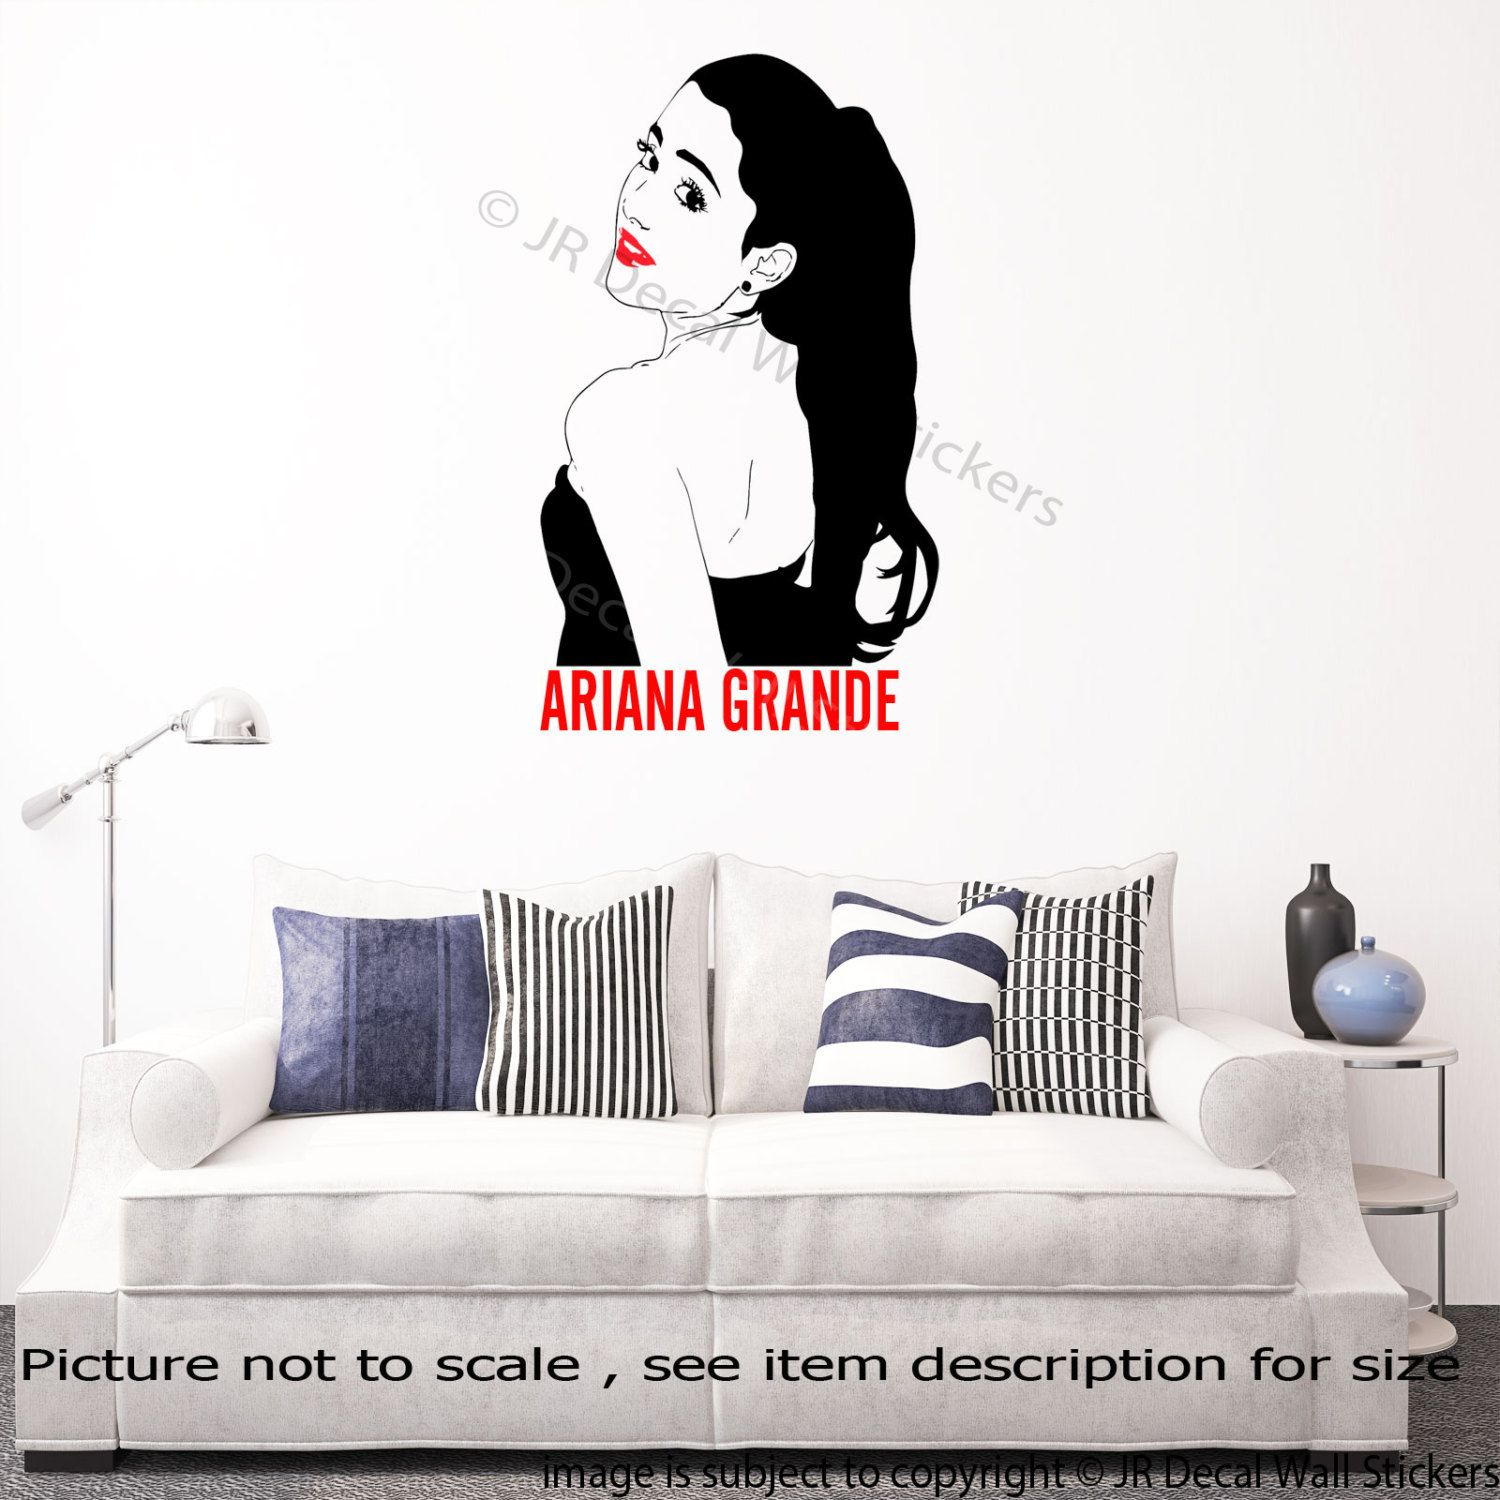 Ariana grande wall decal removable vinyl celebrity wall sticker d3 ariana grande wall decal removable vinyl celebrity wall sticker d3 by jrdecal on etsy amipublicfo Image collections